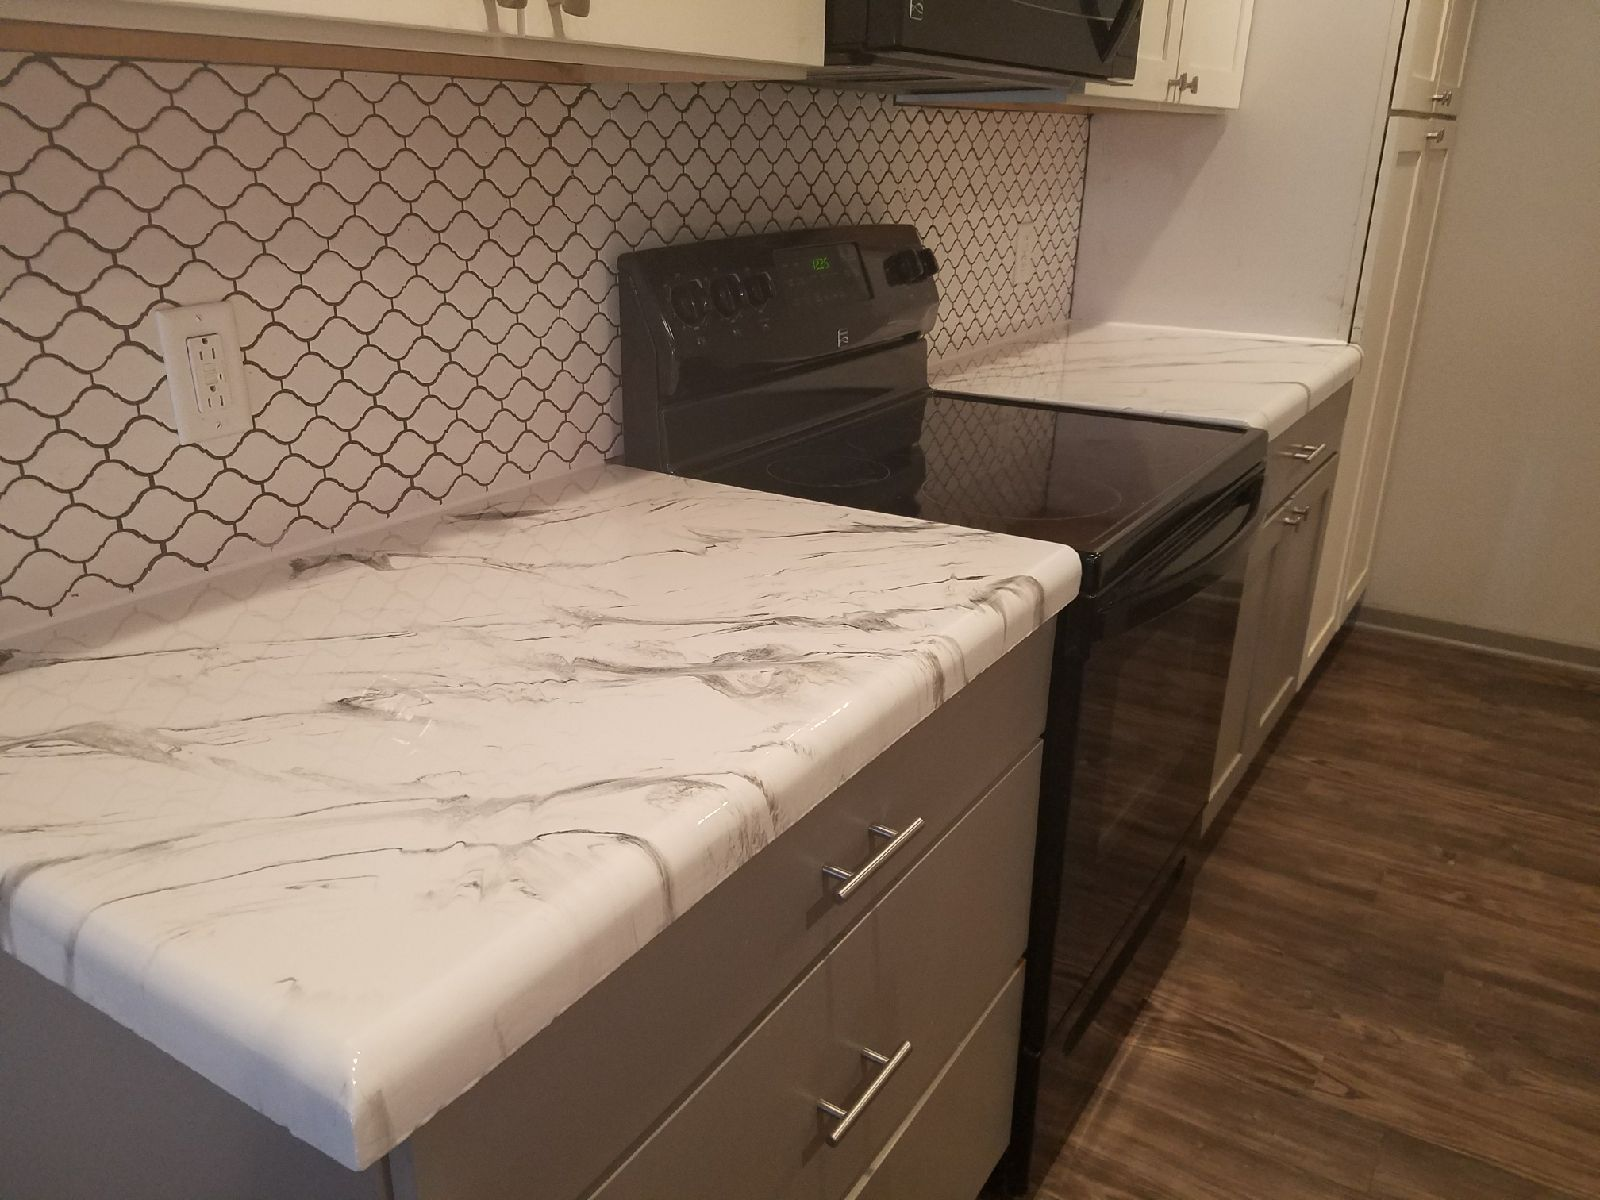 Epoxy Kitchen Countertops Over Existing Concrete Countertops In The Color Of White Marble Wit Recycled Glass Countertops Countertop Remodel Kitchen Countertops